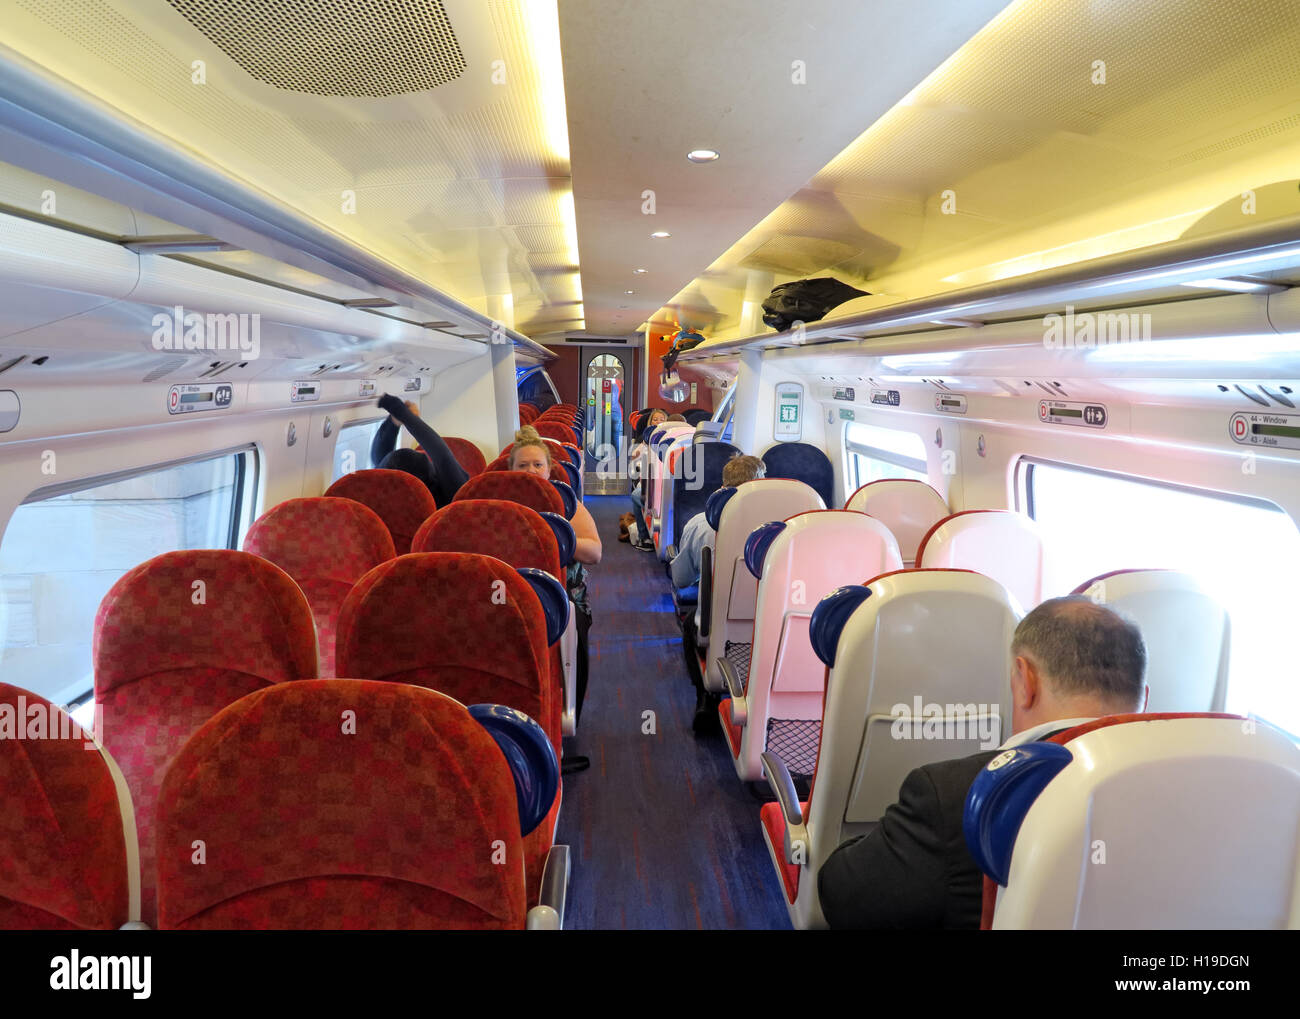 West,Coast,Main,Line,seat,seats,carriage,rail,Railway,Station,luxury,standard,second,2nd,class,accommodation,rail,franchise,inside,goatclass,Voyager,pendo,pendolino,British,age,of,the,train,marketing,subsidy,privitised,West Coast Main Line,Goat class,Virgin Voyager,train carriage,GoTonySmith,@HotpixUK,Tony,Smith,different,unique,renationalise,renationalise,seat,seats,beam,app,transport,travel,traveling,travelling,trip,Richard,Branson,Branston,gangway,InterCity,Express,Buy Pictures of,Buy Images Of,Images of,Stock Images,Tony Smith,Photo of,Age of the train,the railways,renationalise the railways,beam app,Passenger Train